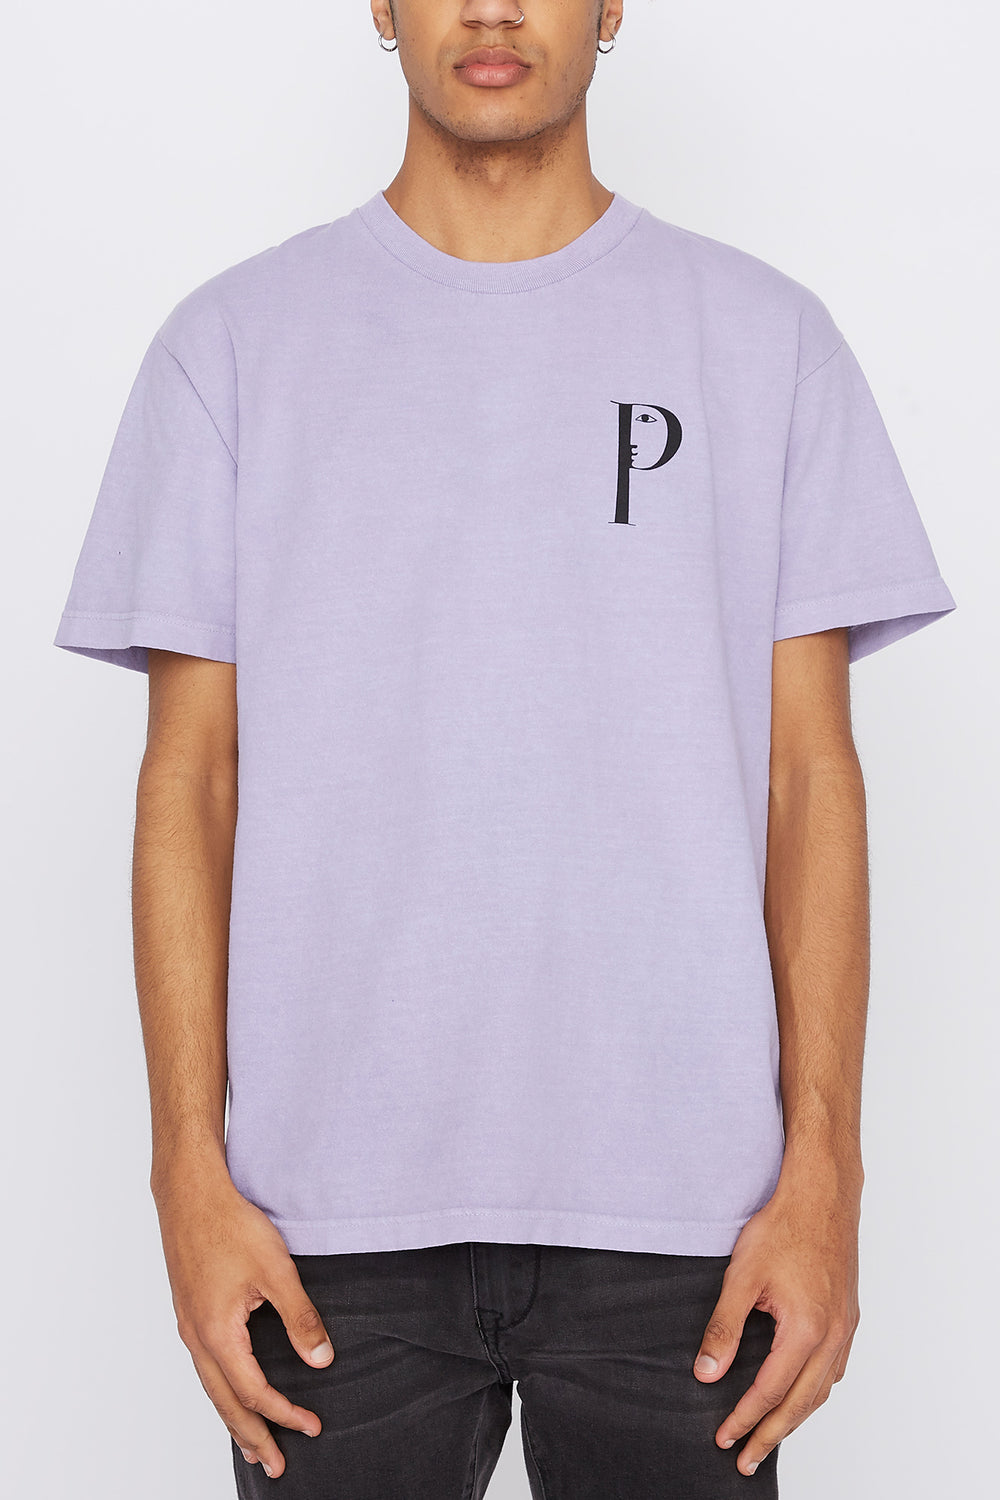 T-Shirt Lookout Primitive Homme Violet